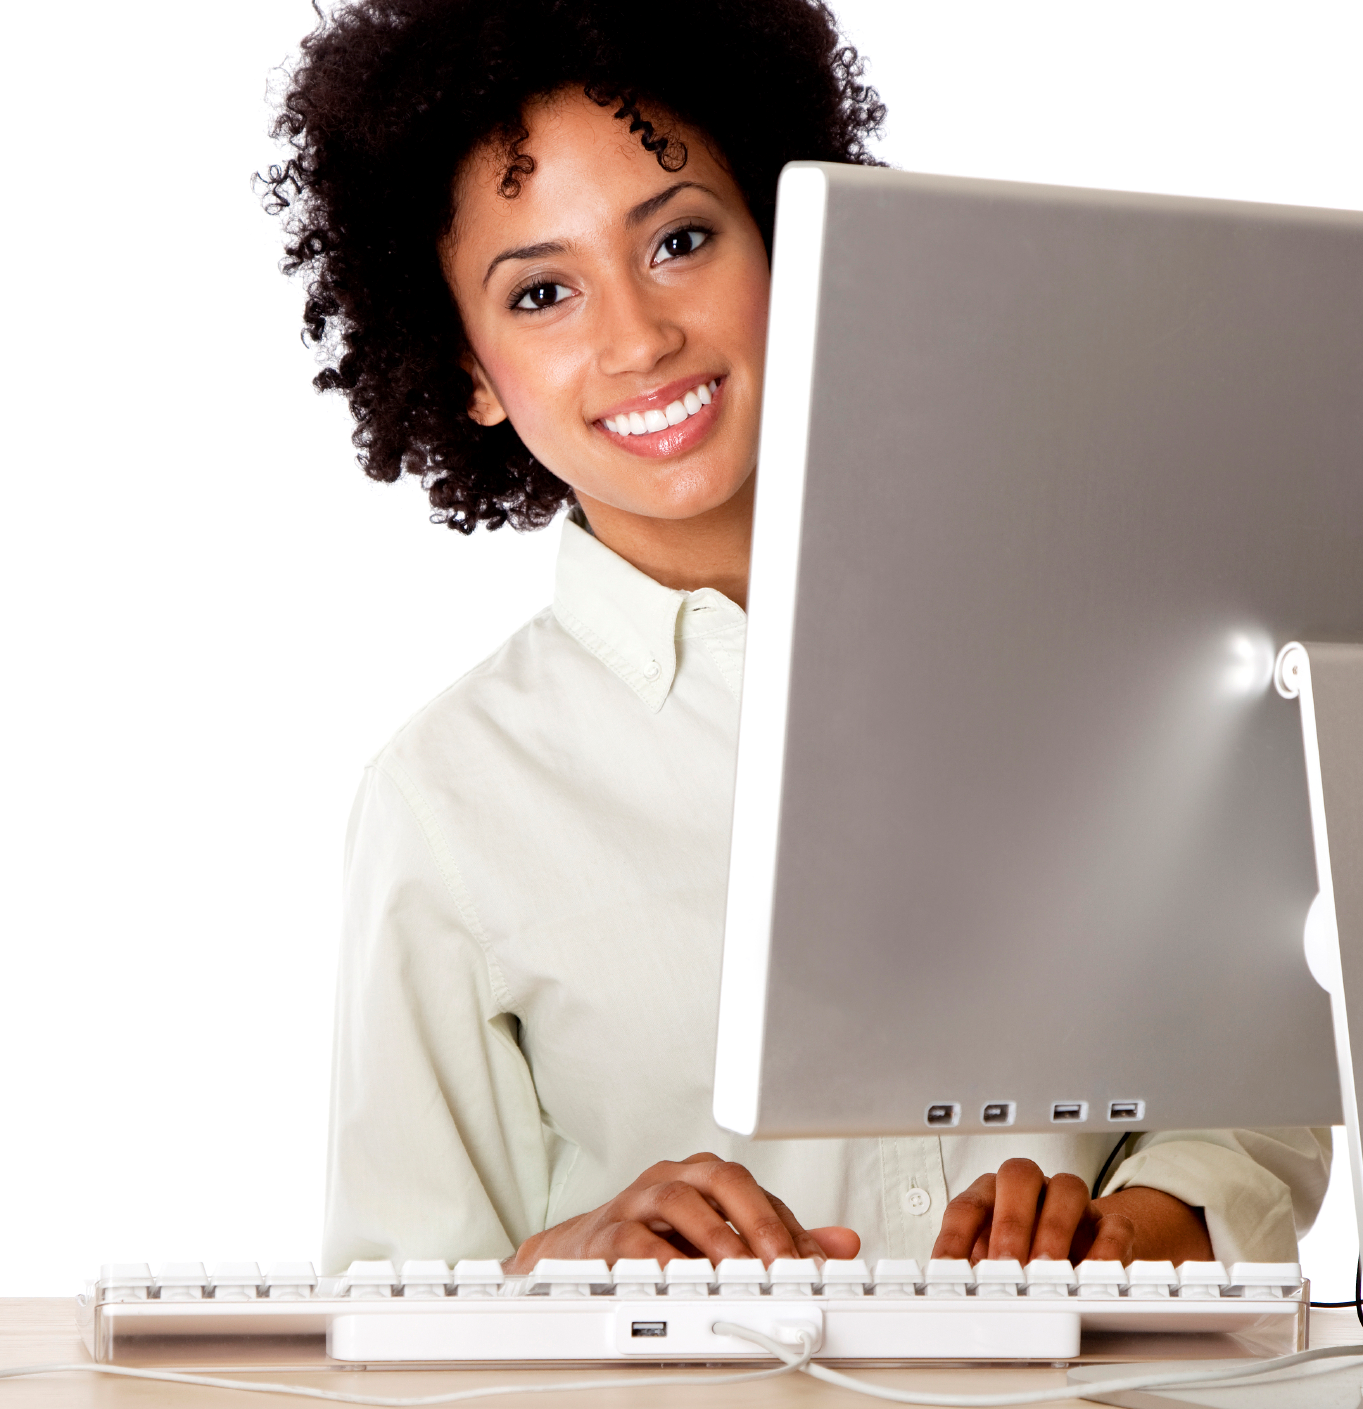 99 Companies Offering Part-Time Work at Home Jobs | Business, Small ...